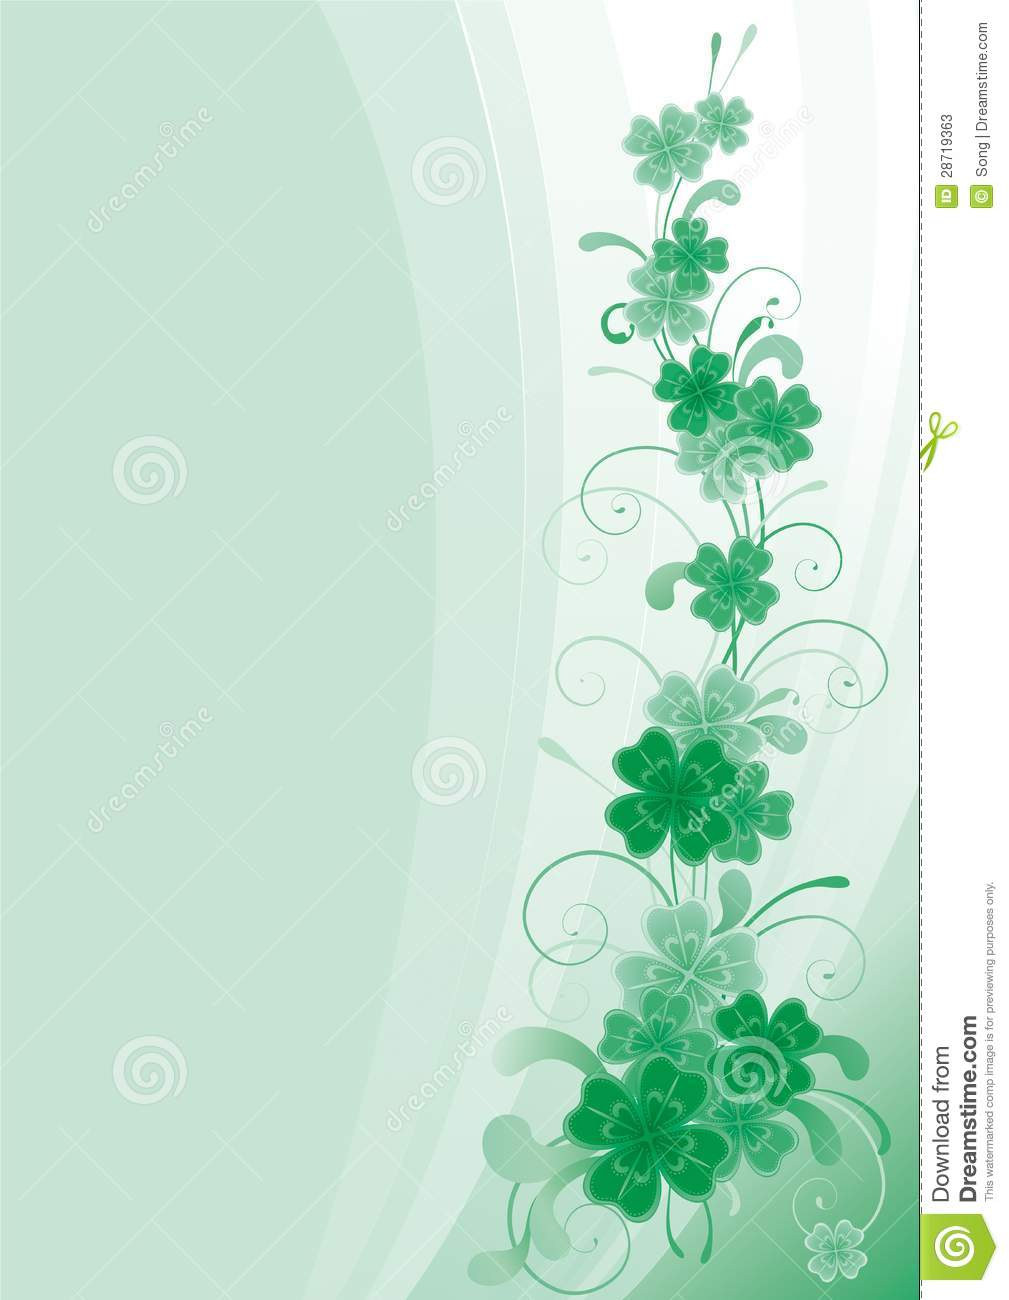 abstract st patrick theme - photo #26